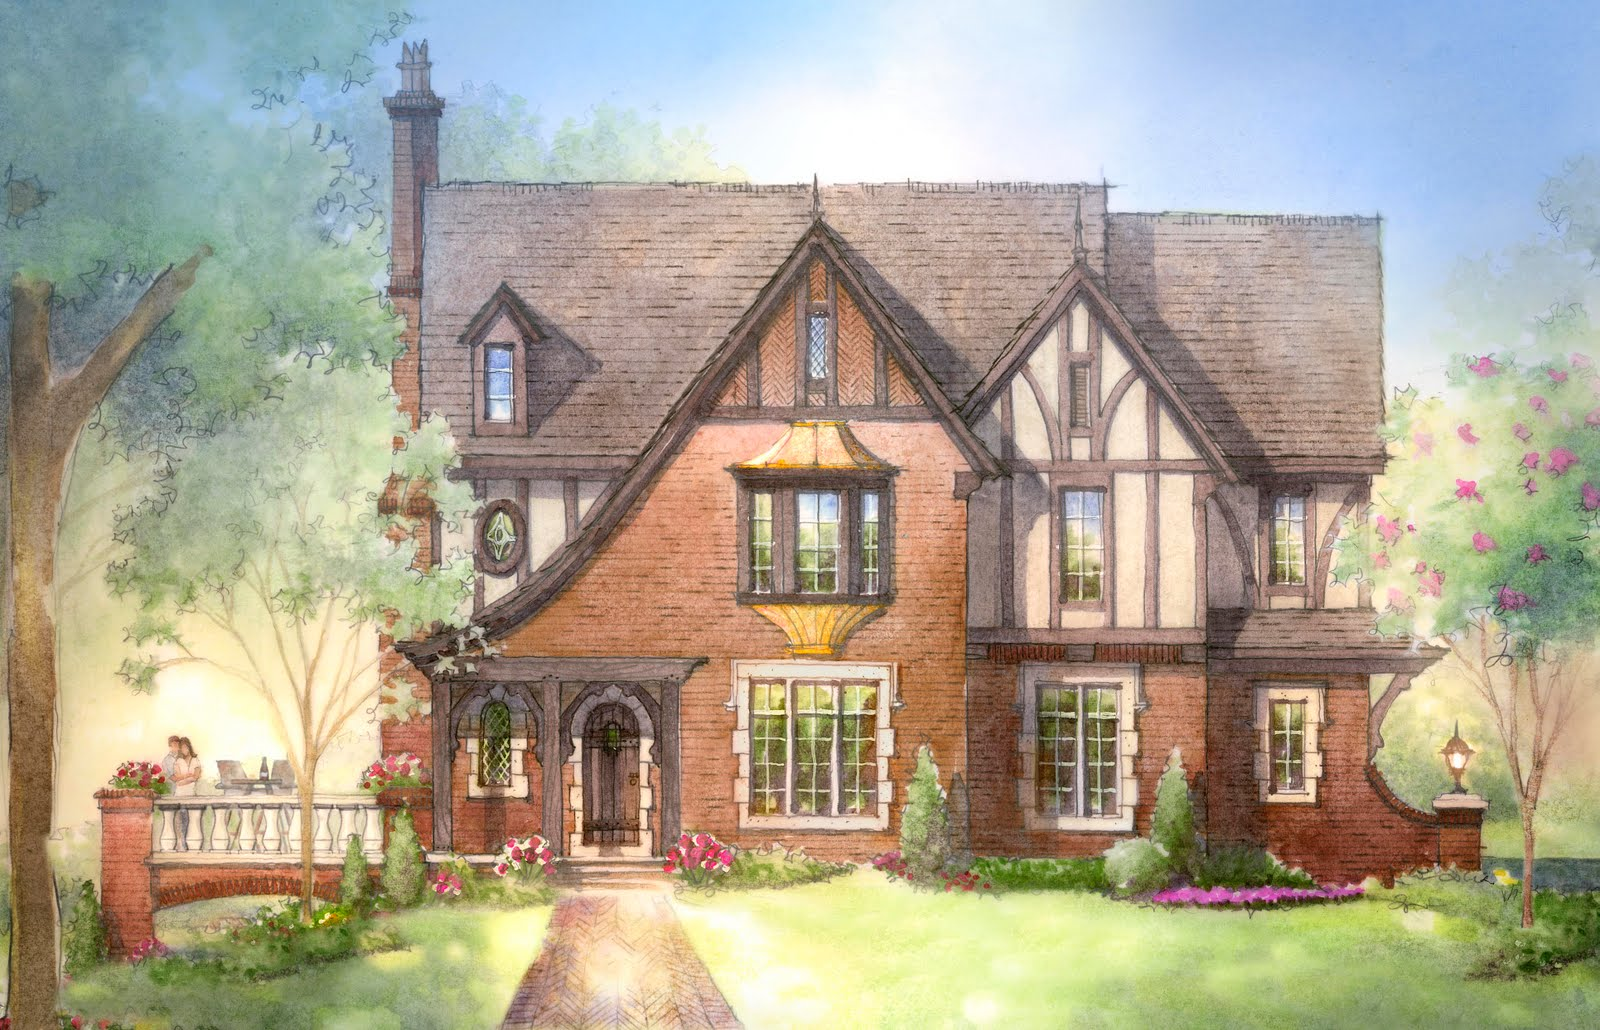 House plans and home designs free blog archive english manor home plans Tudor home interior design ideas